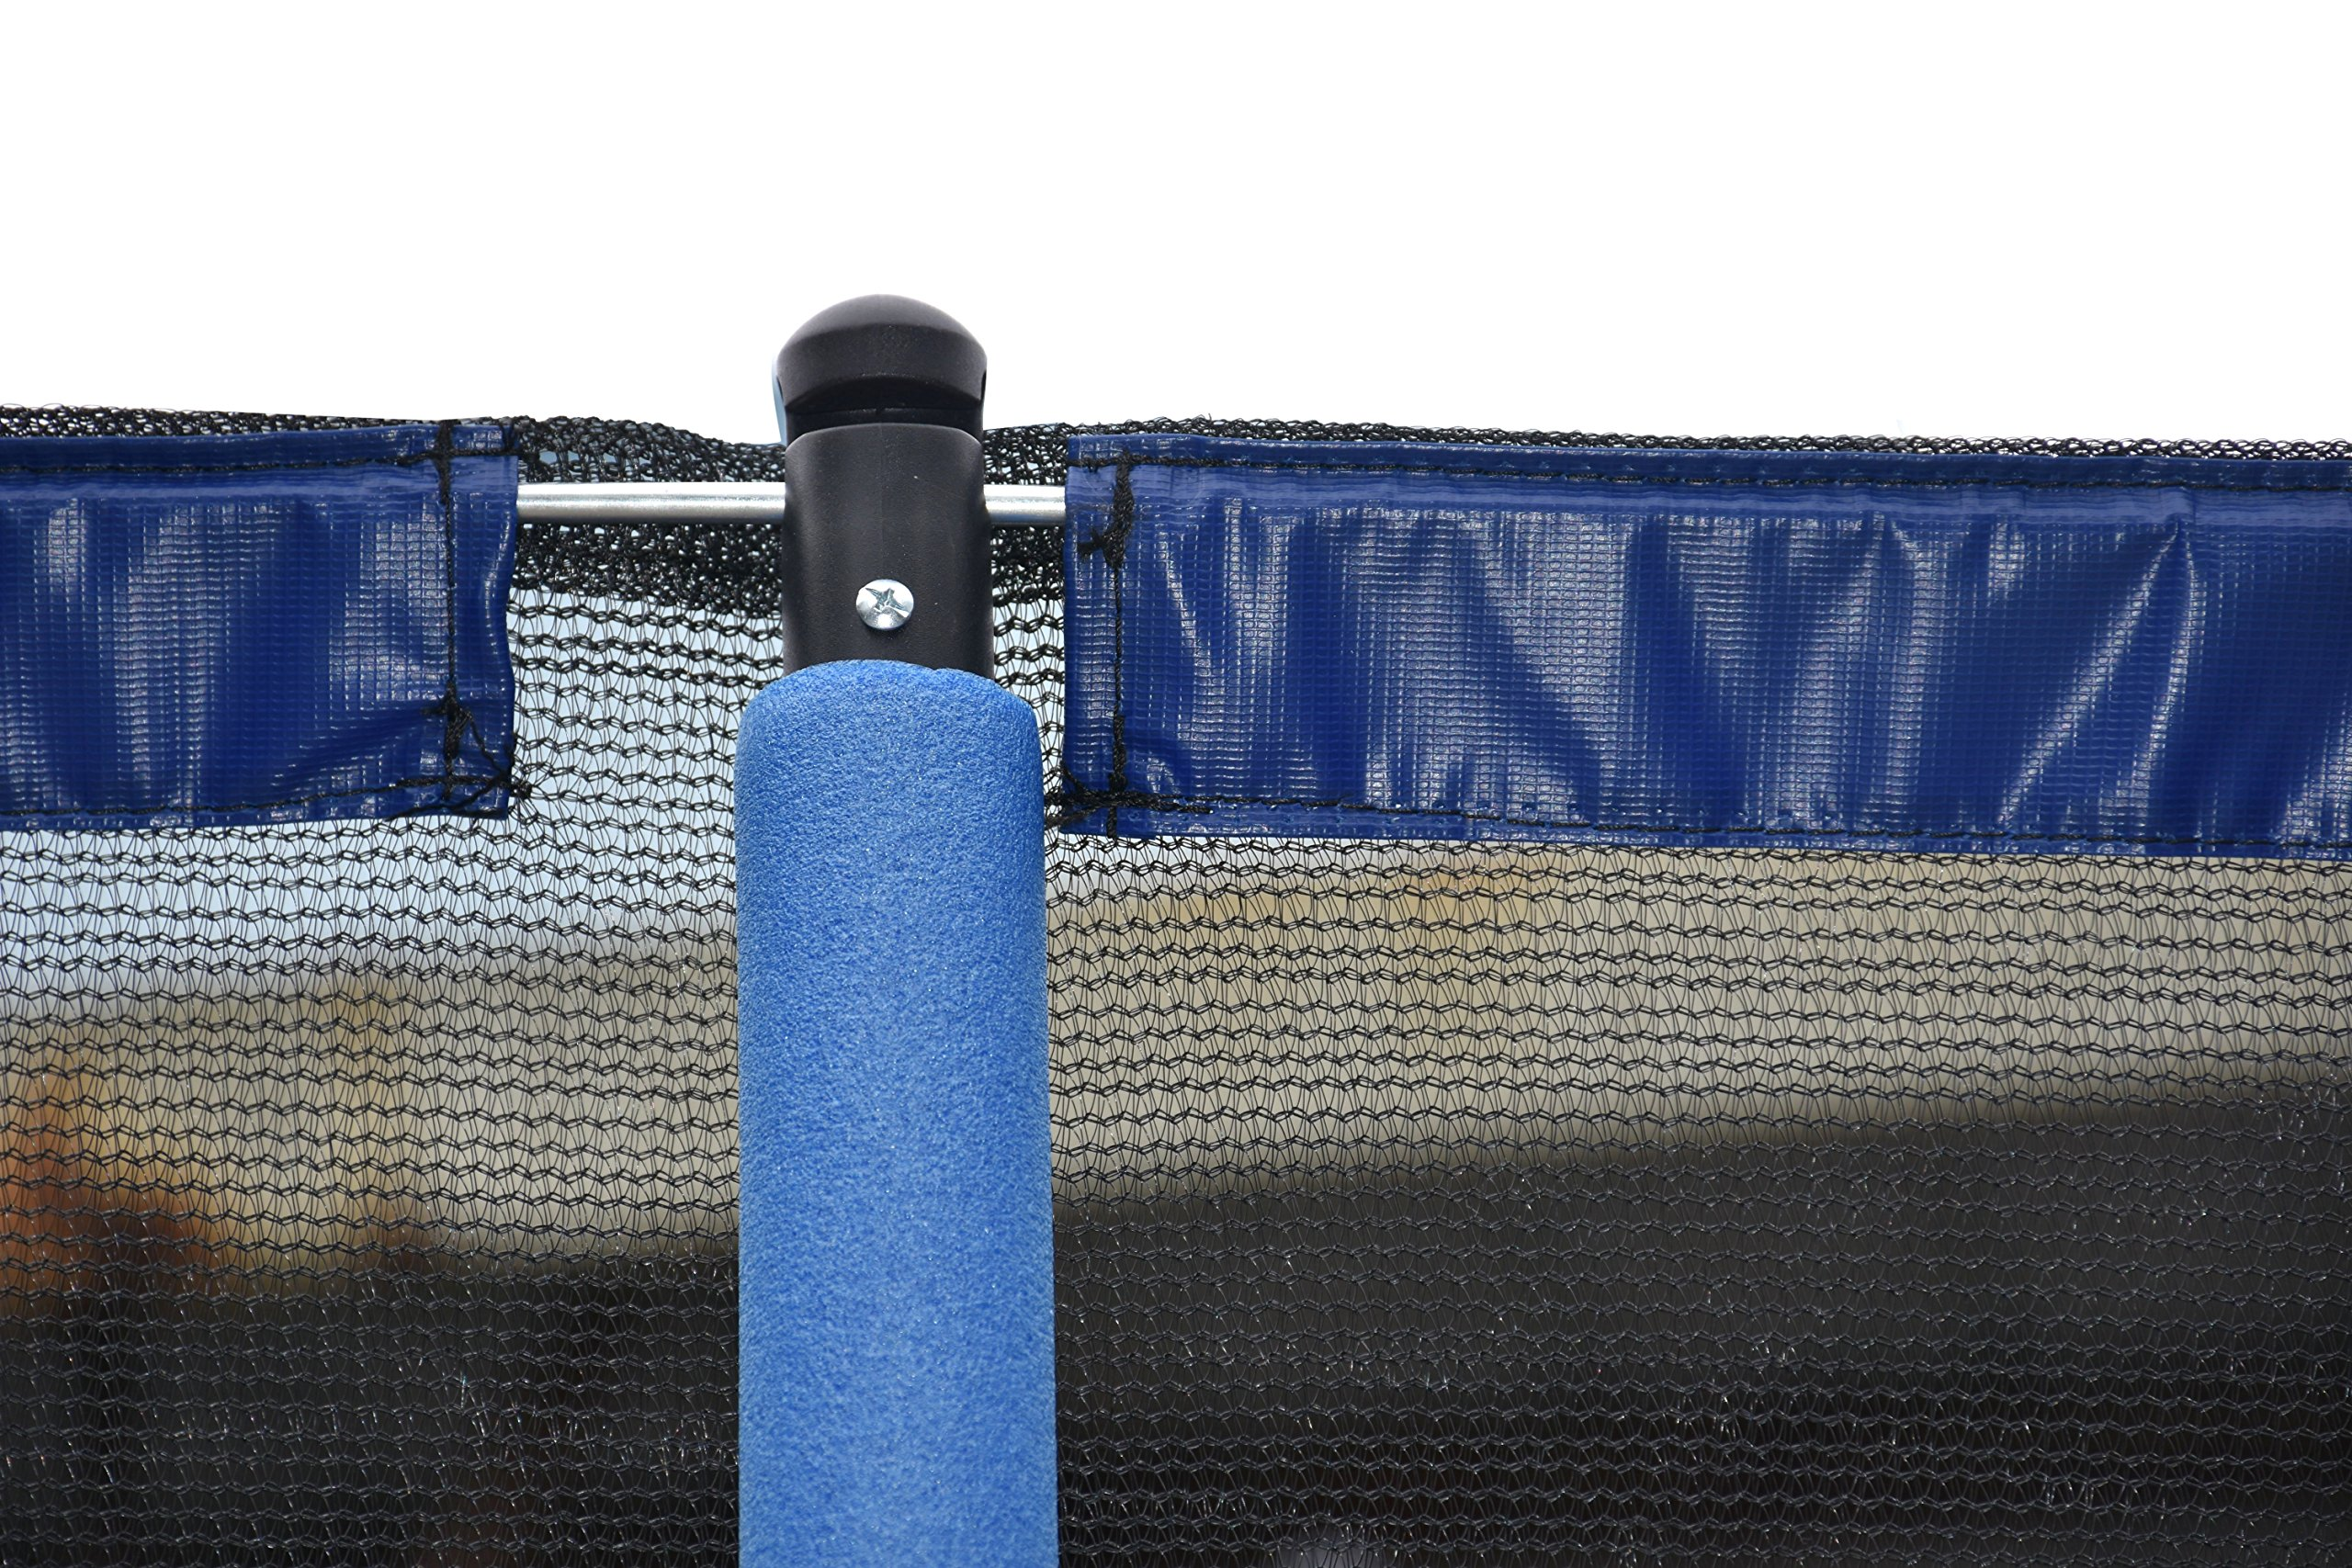 Bounce Master Enclosure 12x8' Rectagular Trampoline by Bounce Master (Image #7)